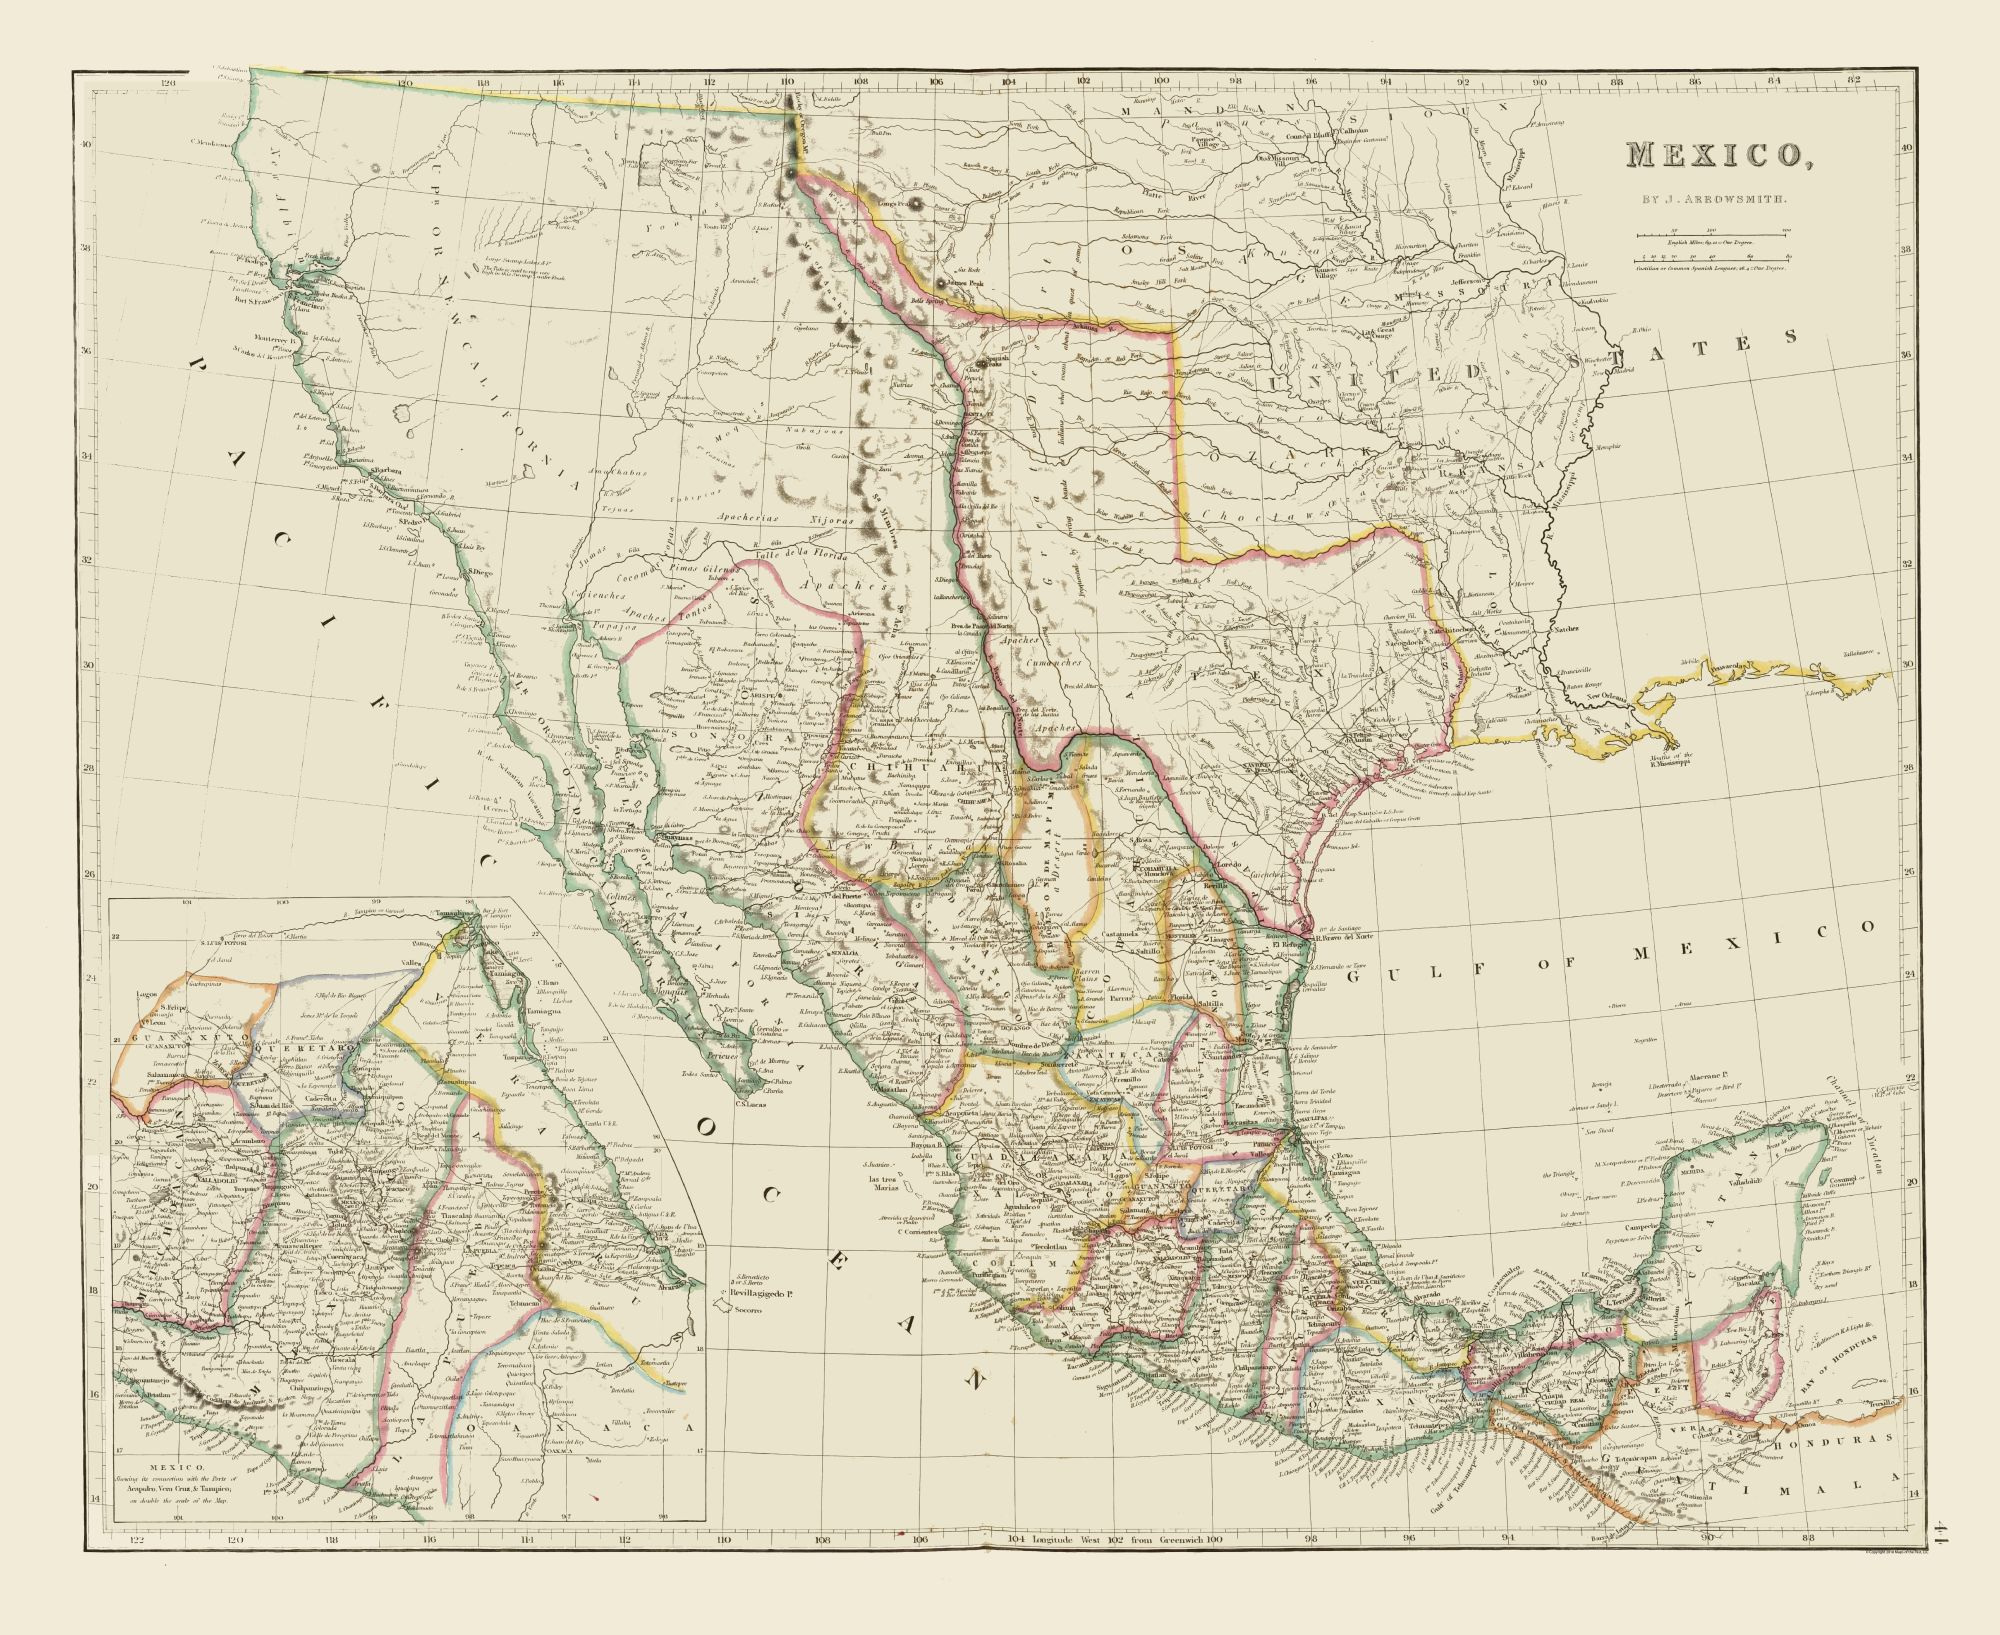 Map Of Texas Mexico.Old State Maps Early Texas Mexico Arrowsmith 1844 28 14 X 23